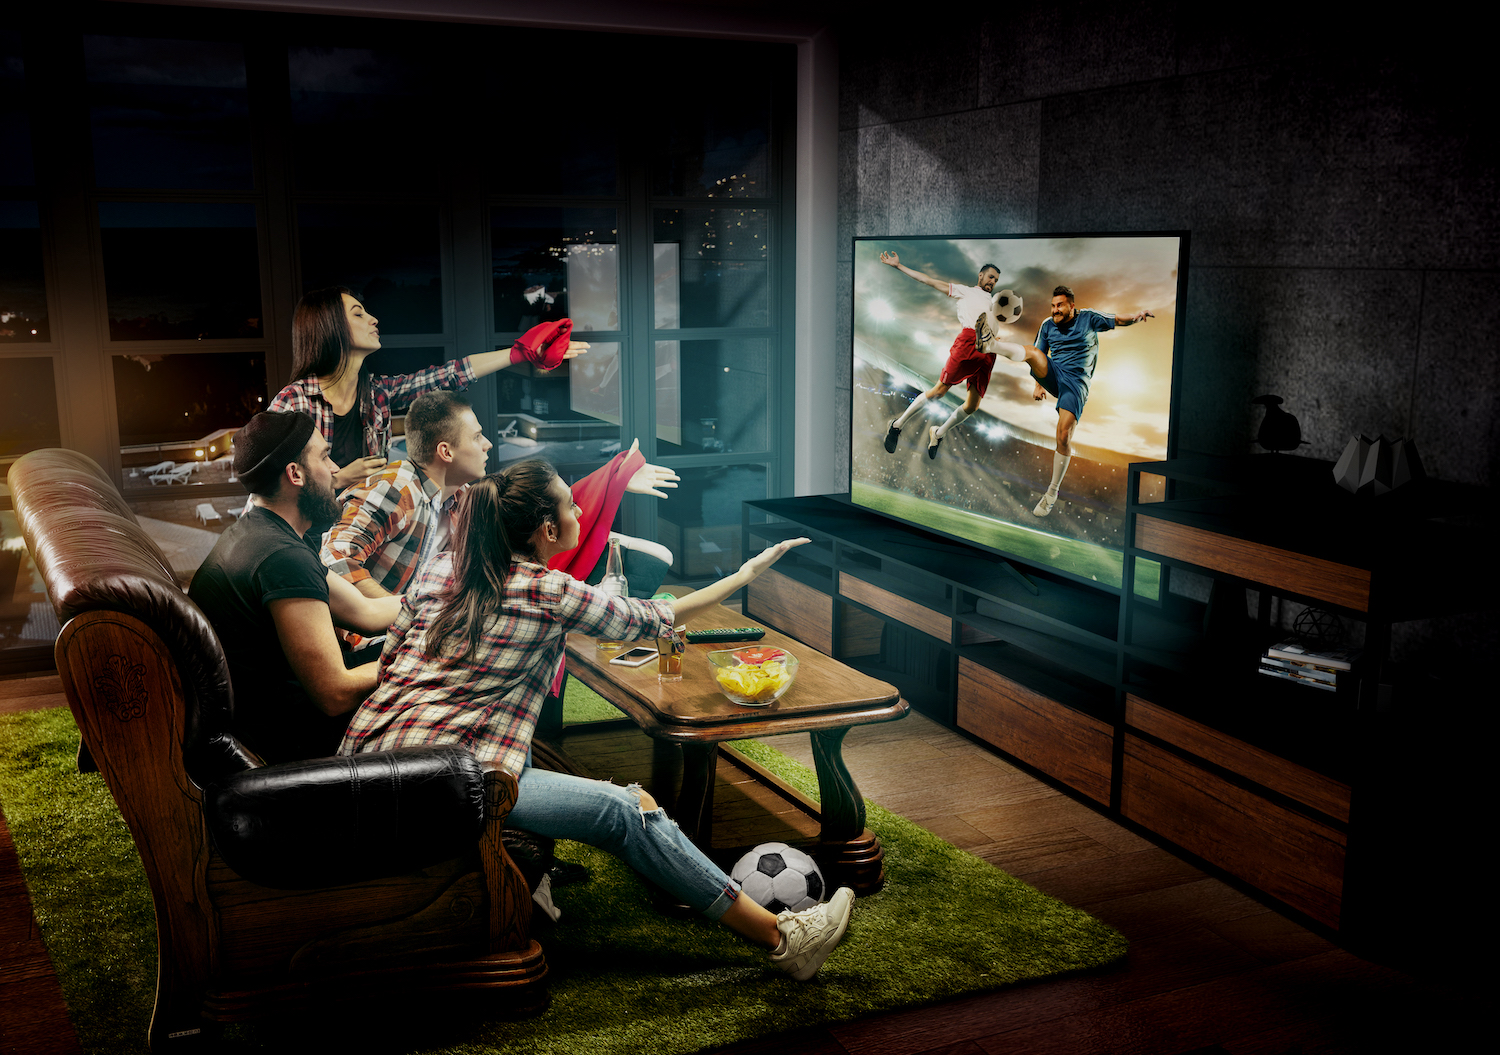 Group of friends watching TV, football match, sport together. Emotional men and women cheering for favourite team, look on goal and fighting for ball. Concept of friendship, leisure activity, emotions.